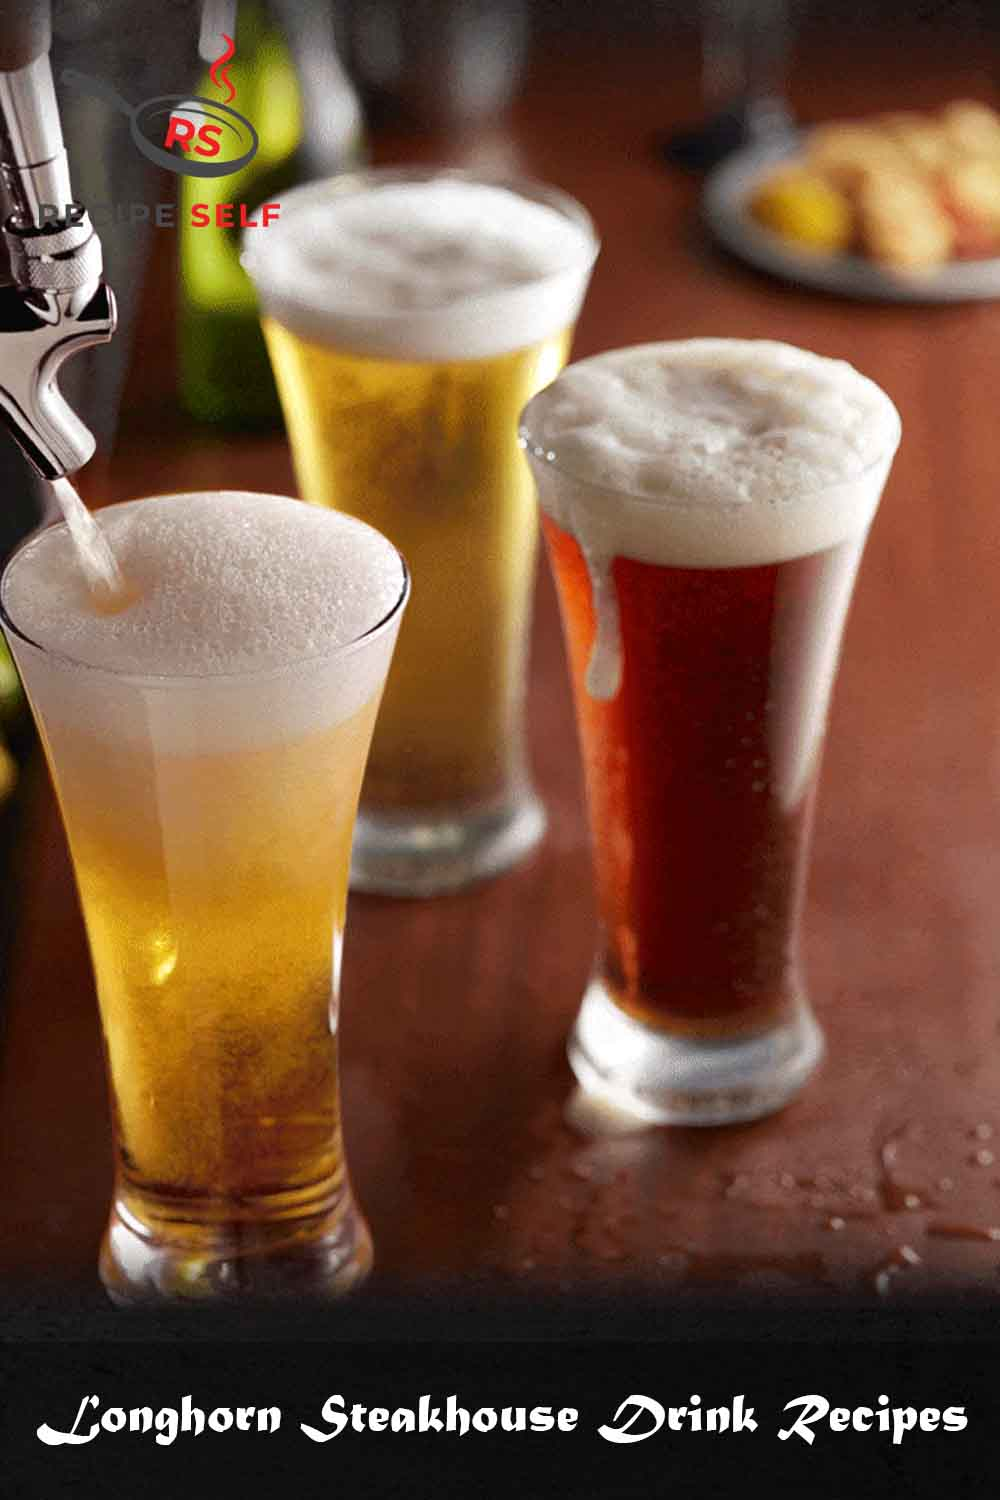 Longhorn Steakhouse Drink Recipes